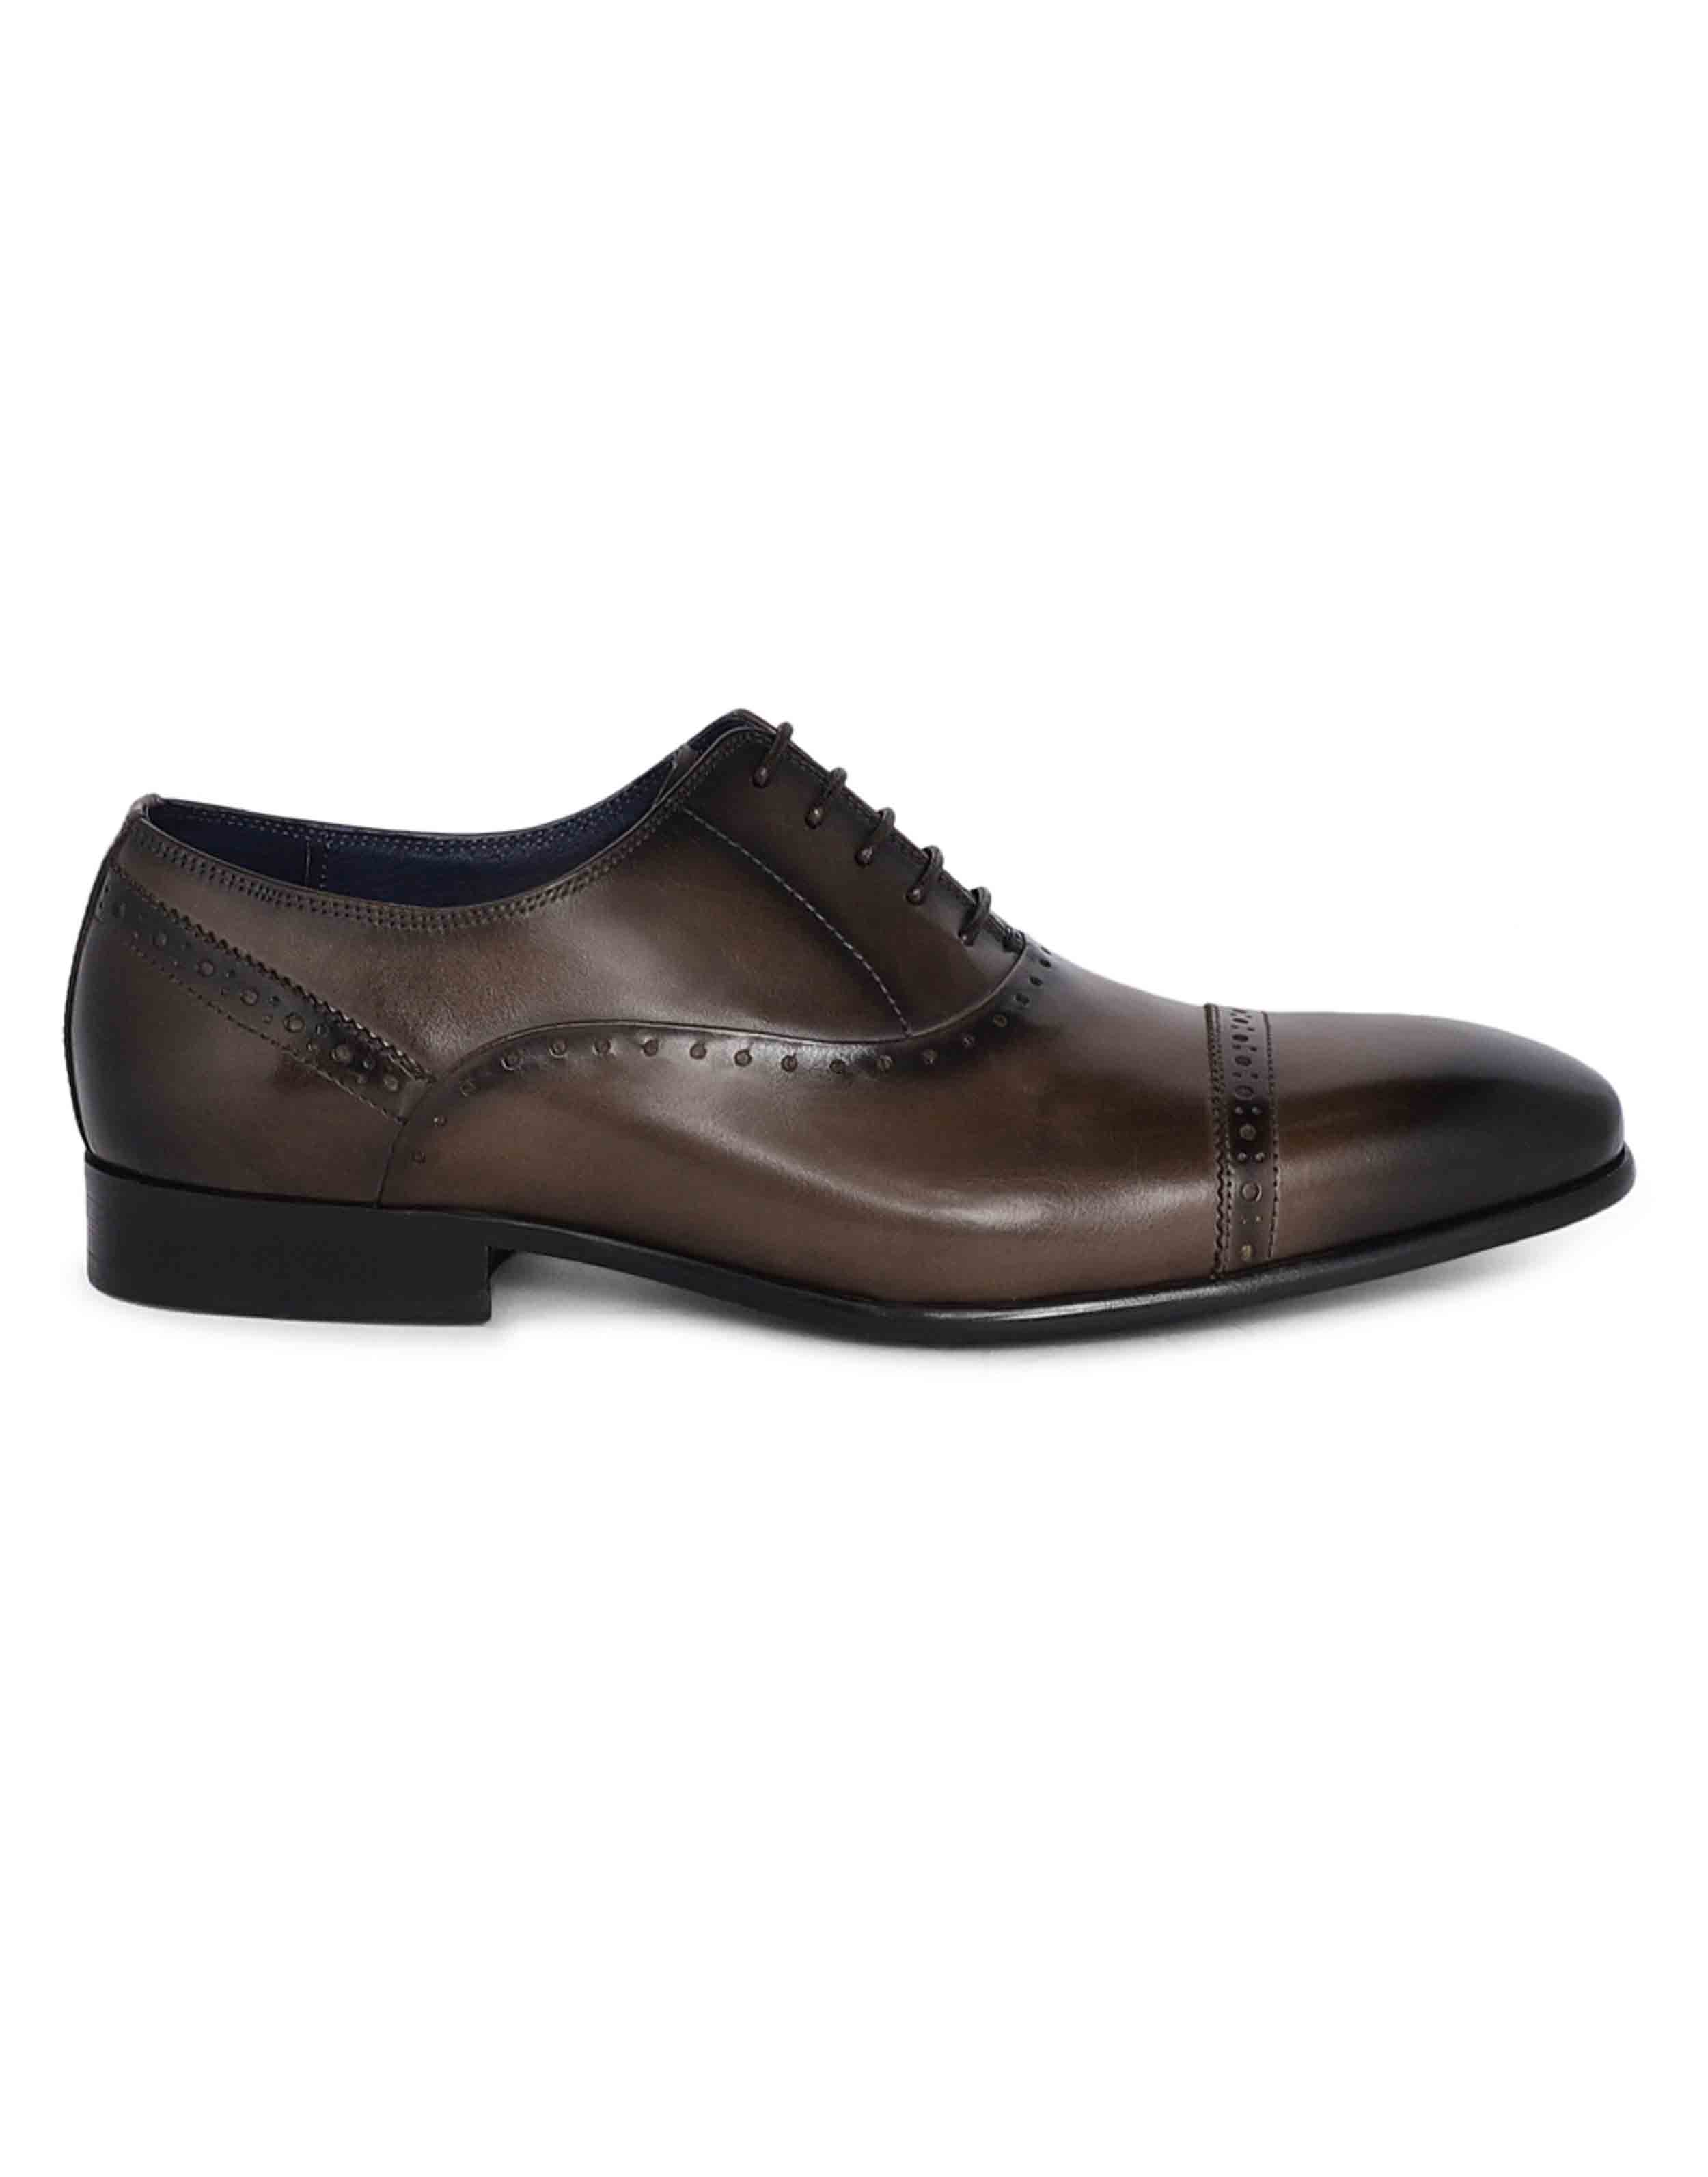 Grey medallion wingtip oxfords1